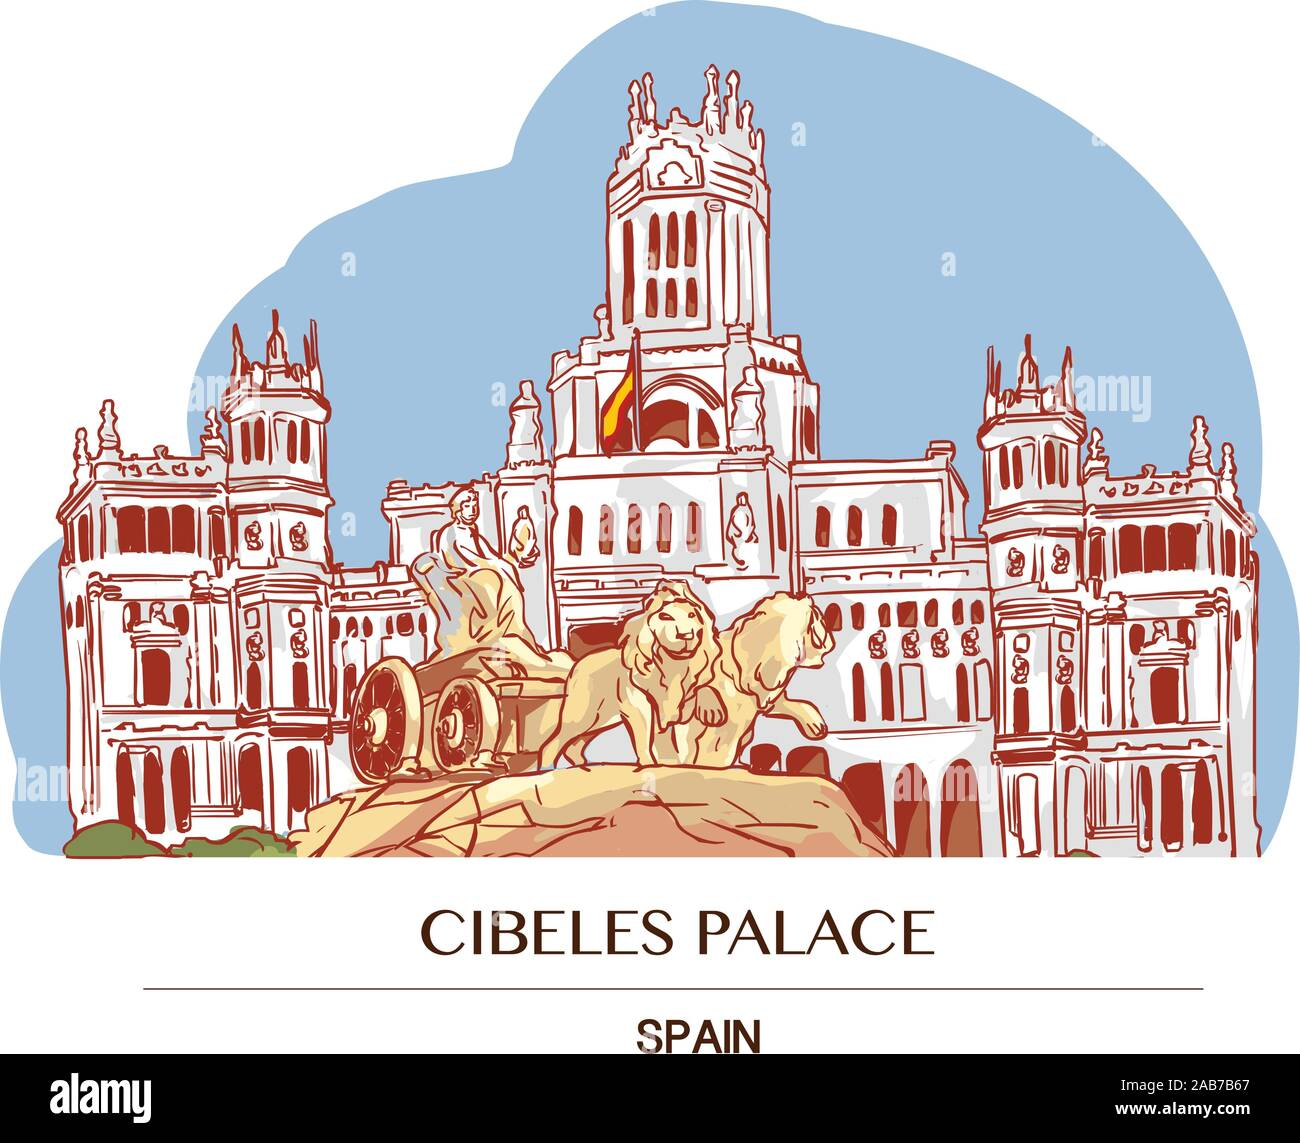 Cibeles Palace Palacio De Cibeles Madrid Spain Stock